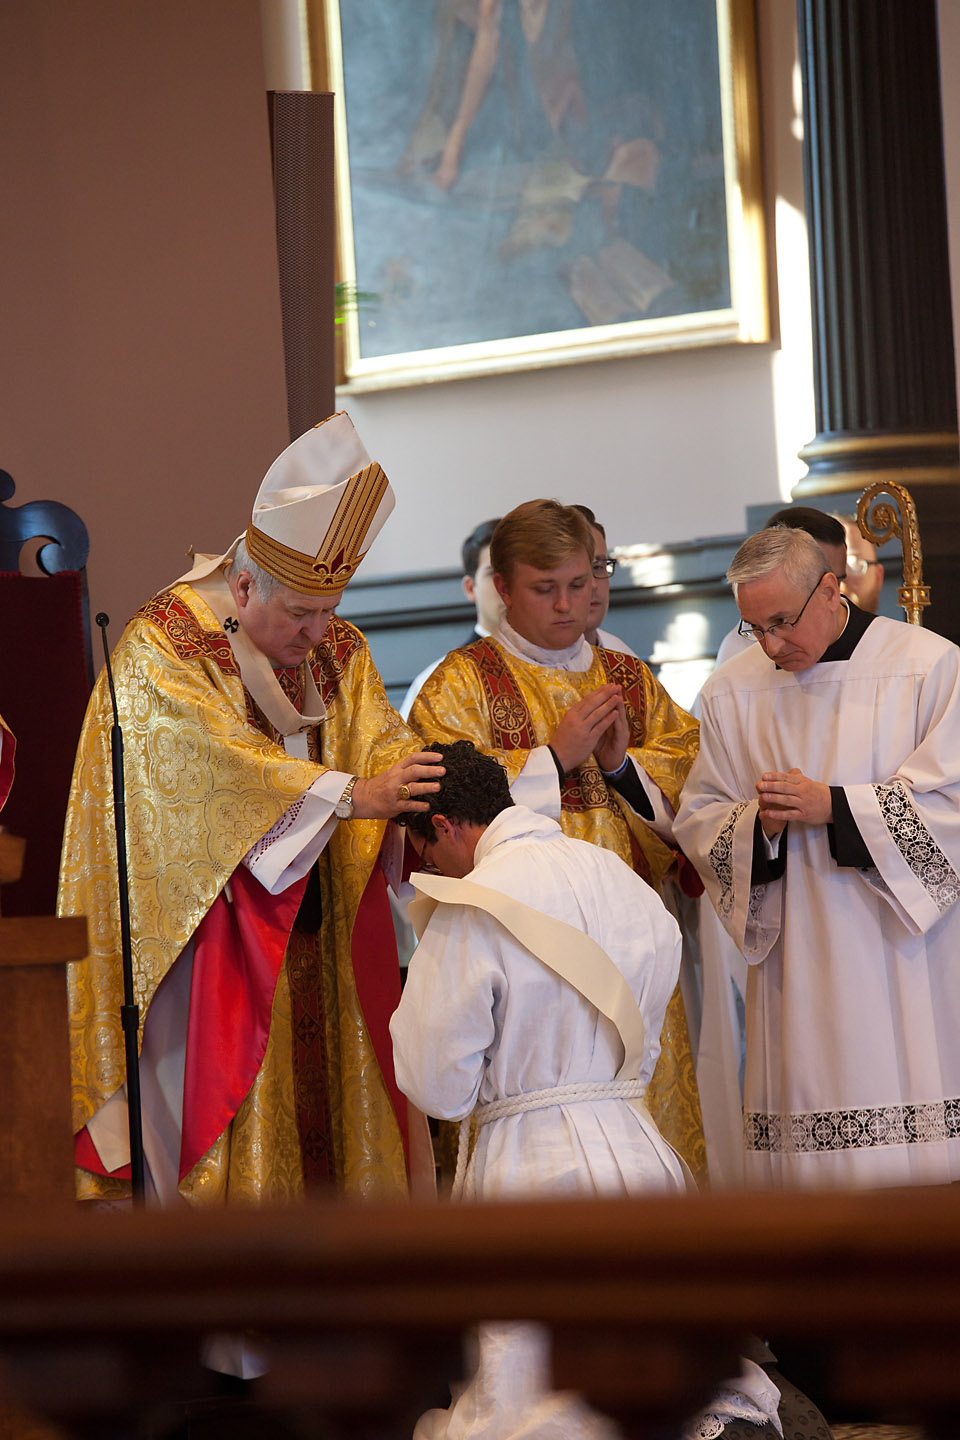 FR MICHAEL RENNIER ORDINATION